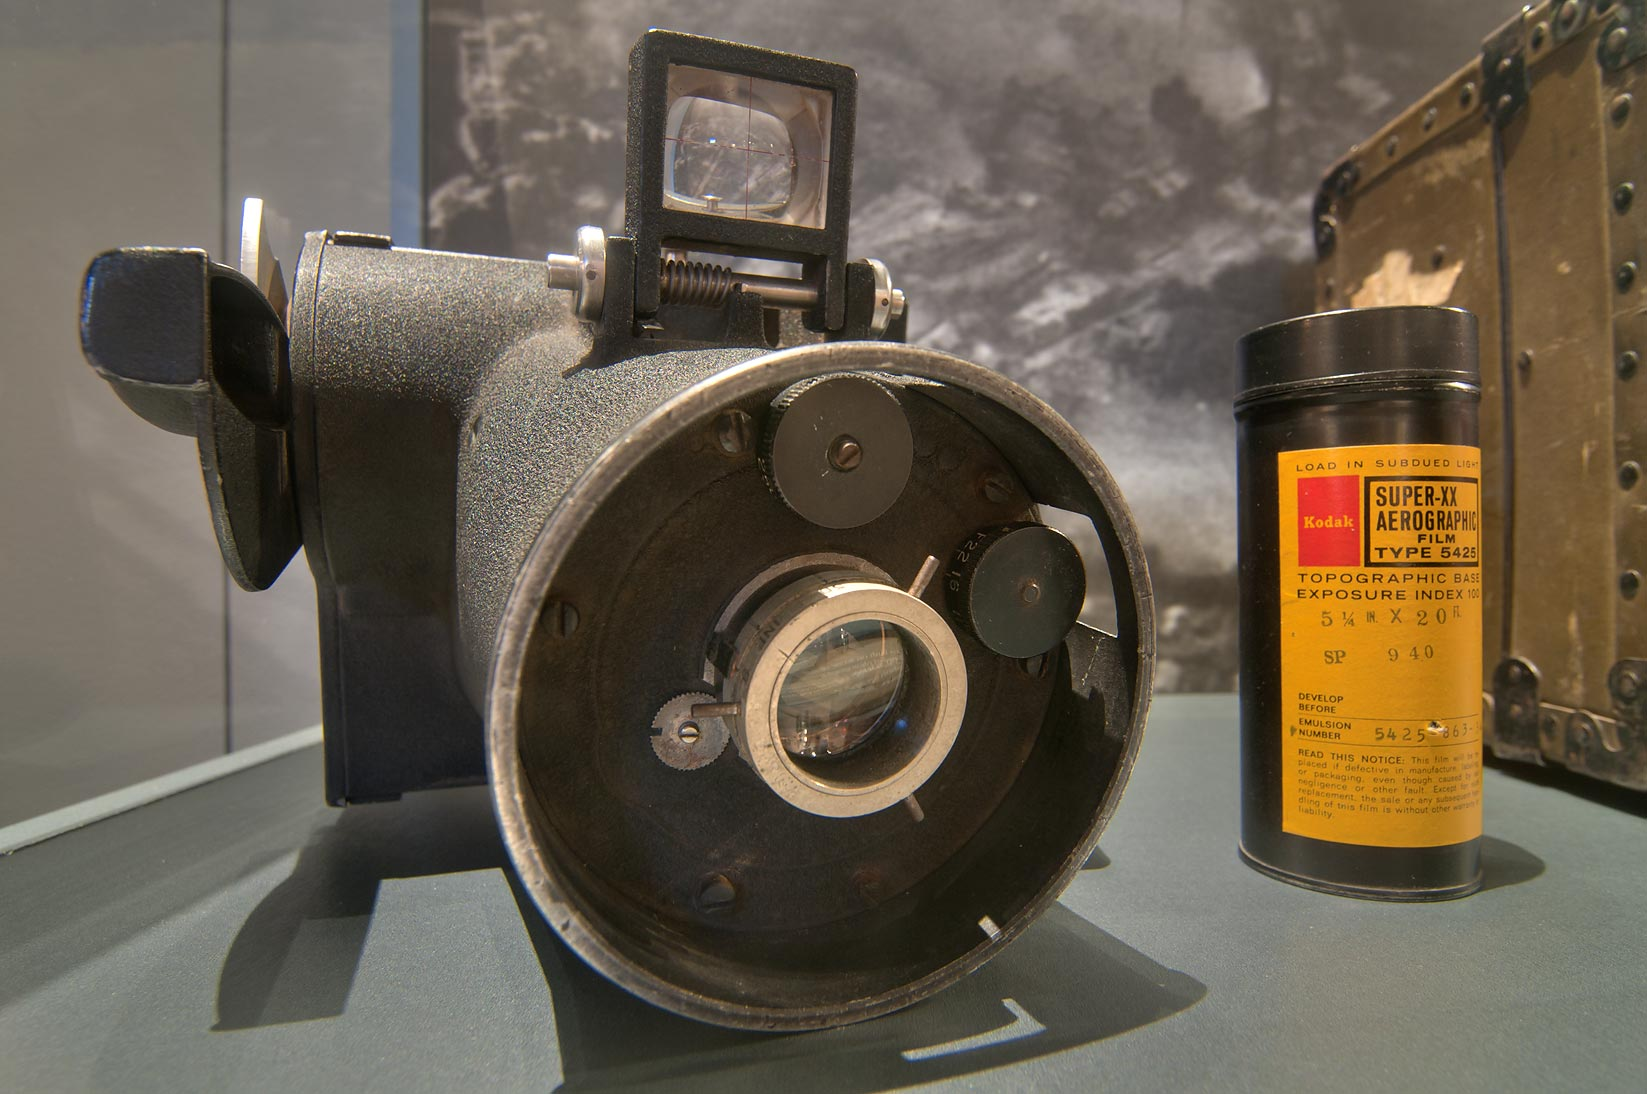 Aerographic camera and film in George Bush Library and Museum. College Station, Texas